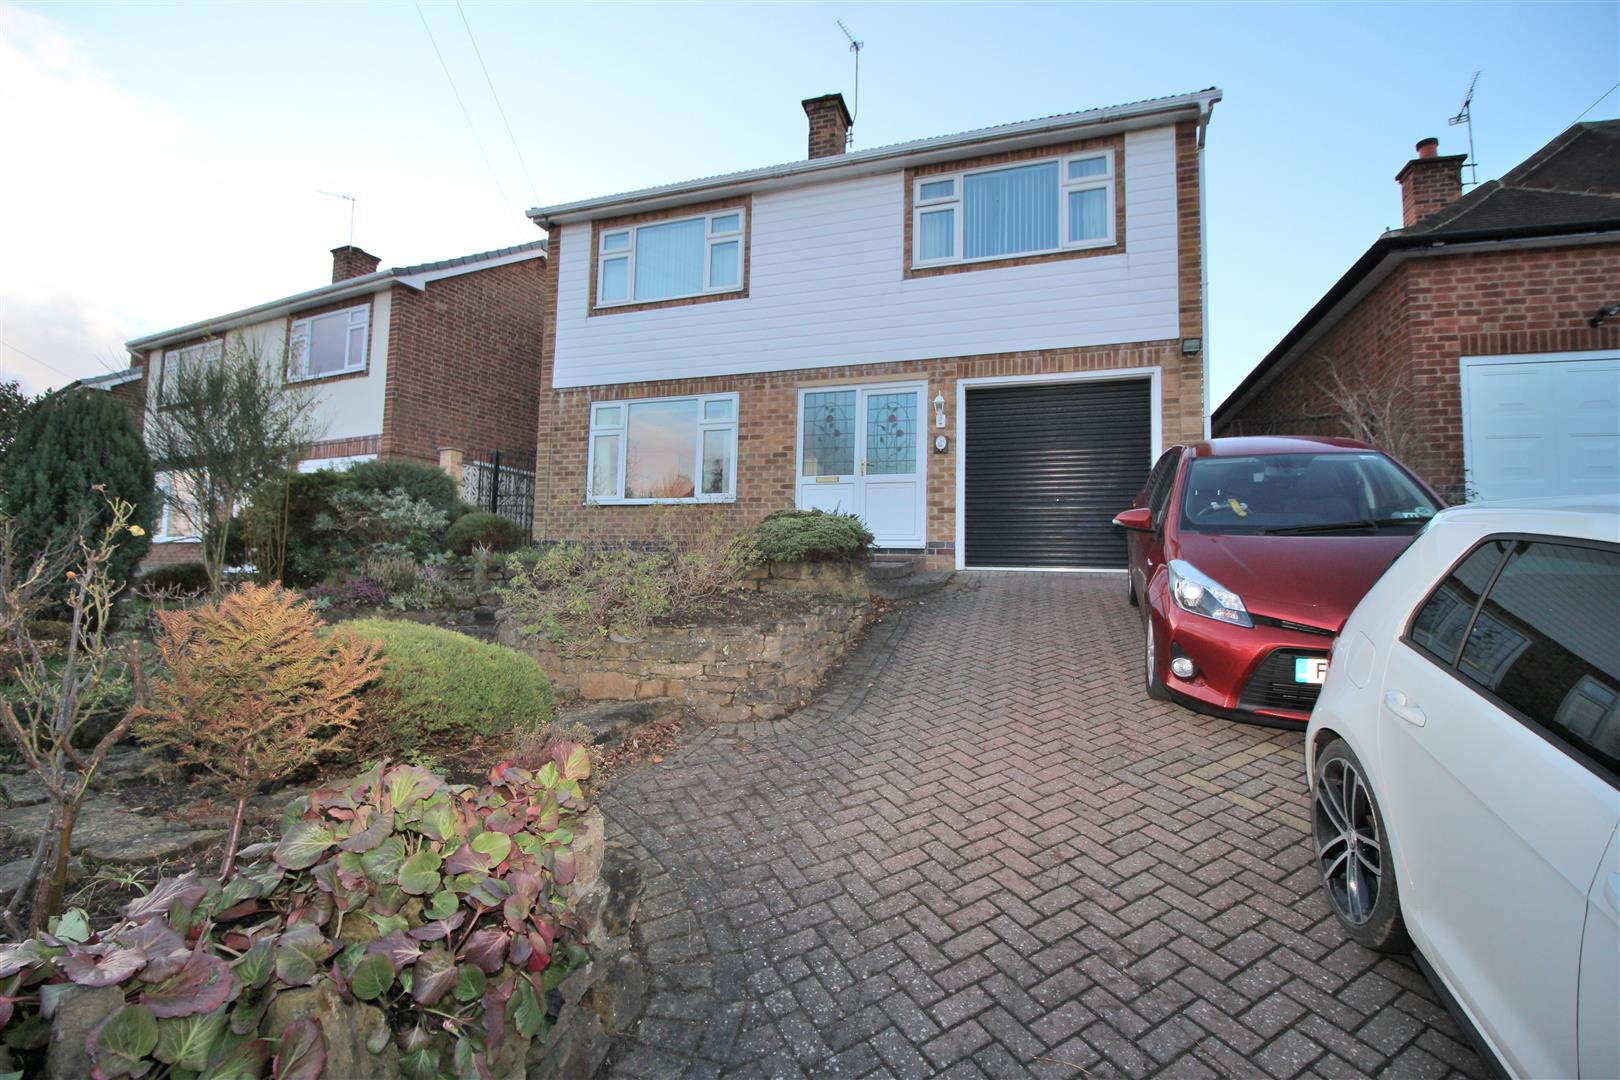 4 Bedrooms Detached House for sale in Thoresby Road, Bramcote, Nottingham